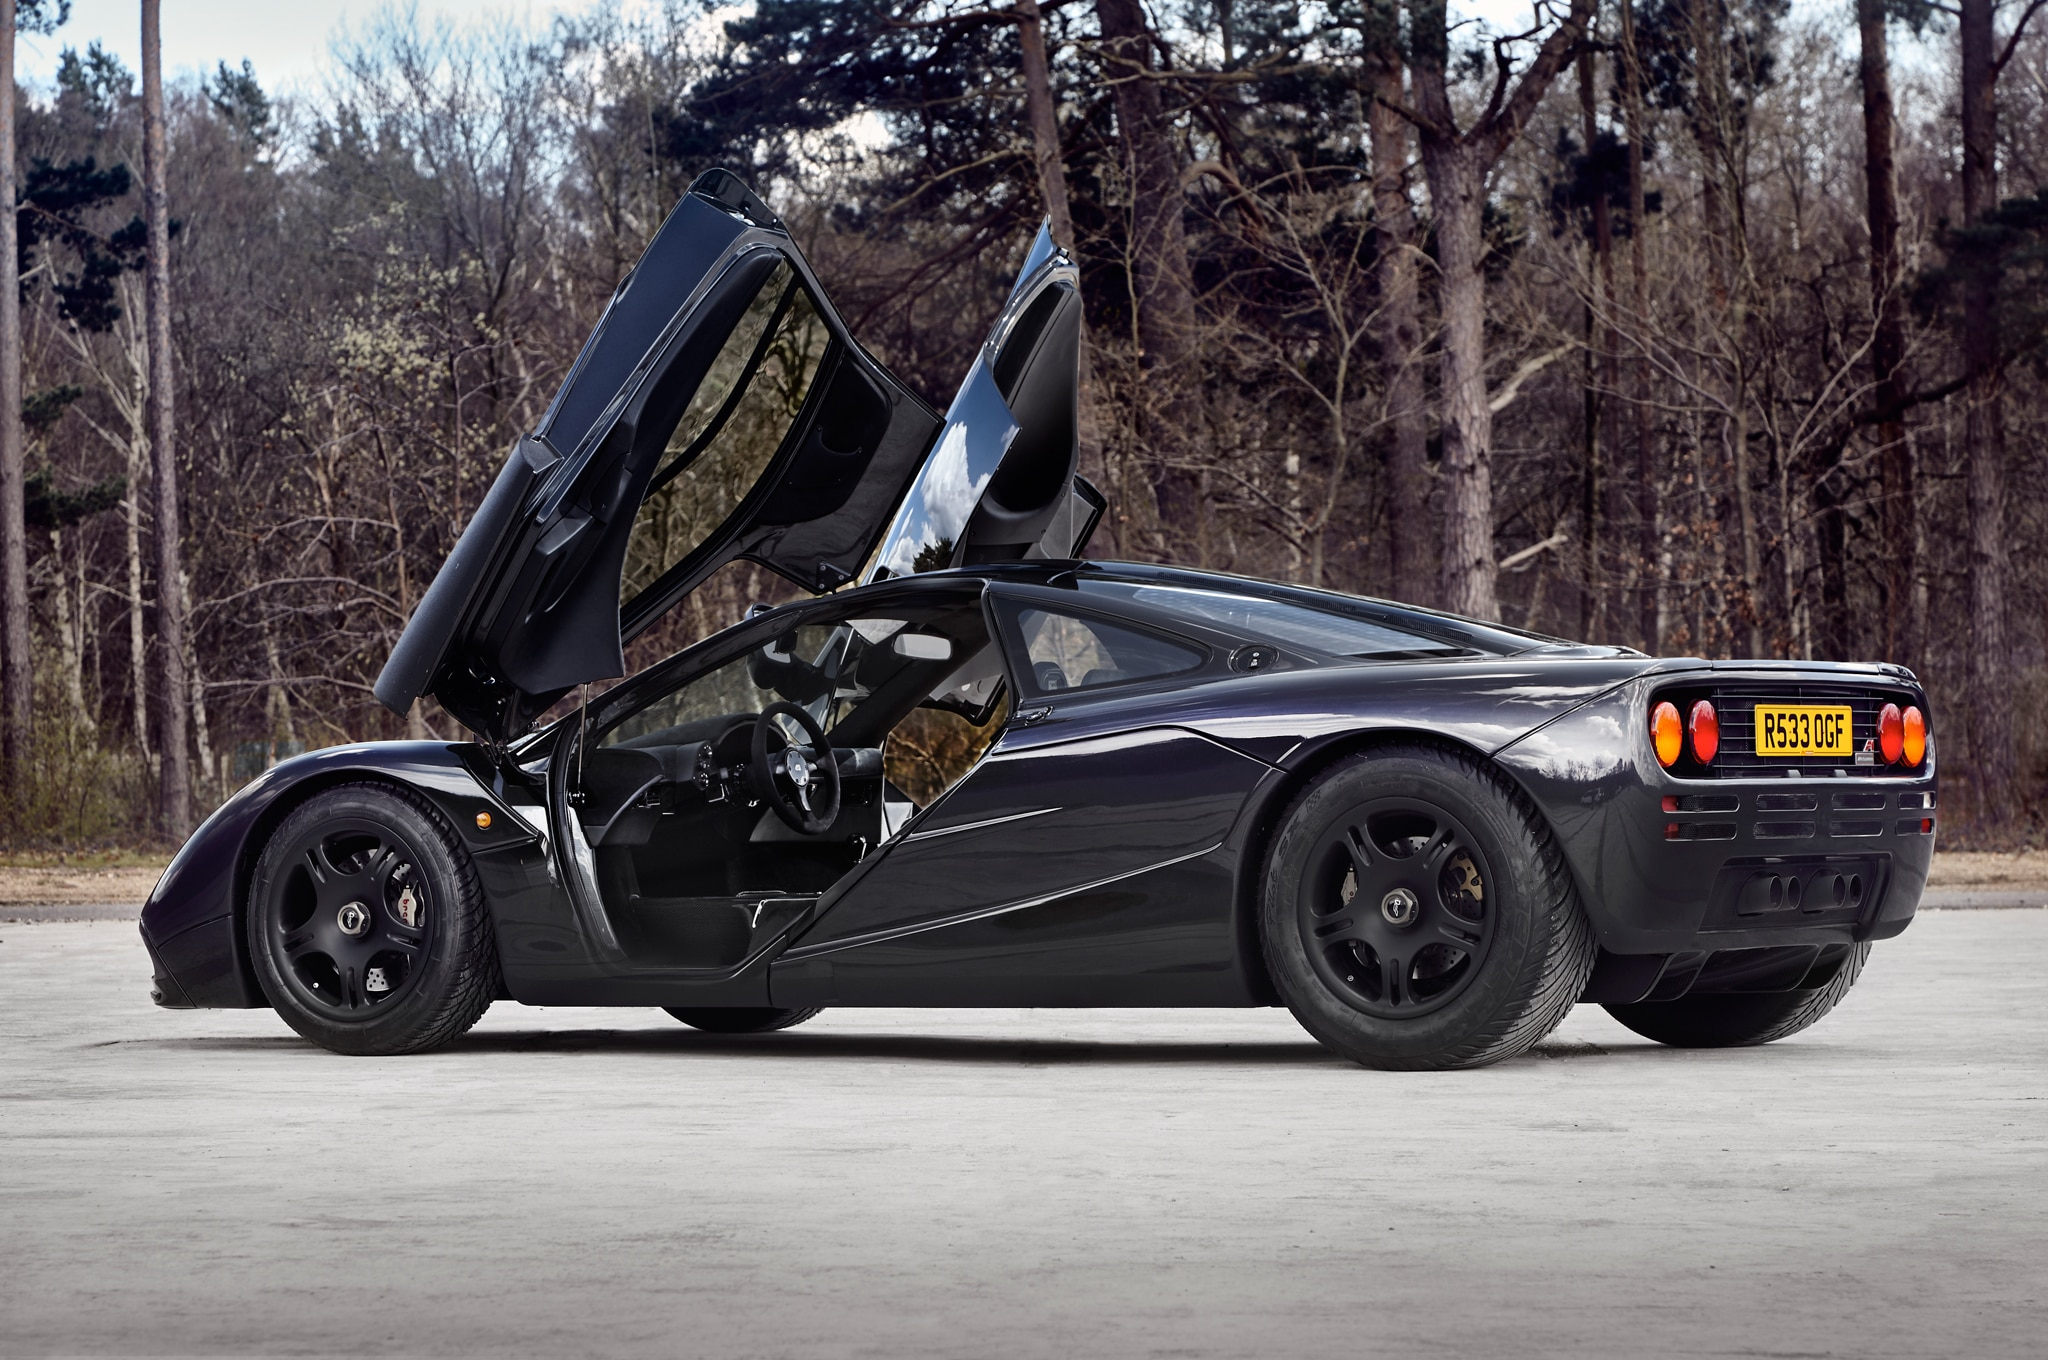 F1: McLaren Special Operations Offers Fresh 1998 F1 Hypercar